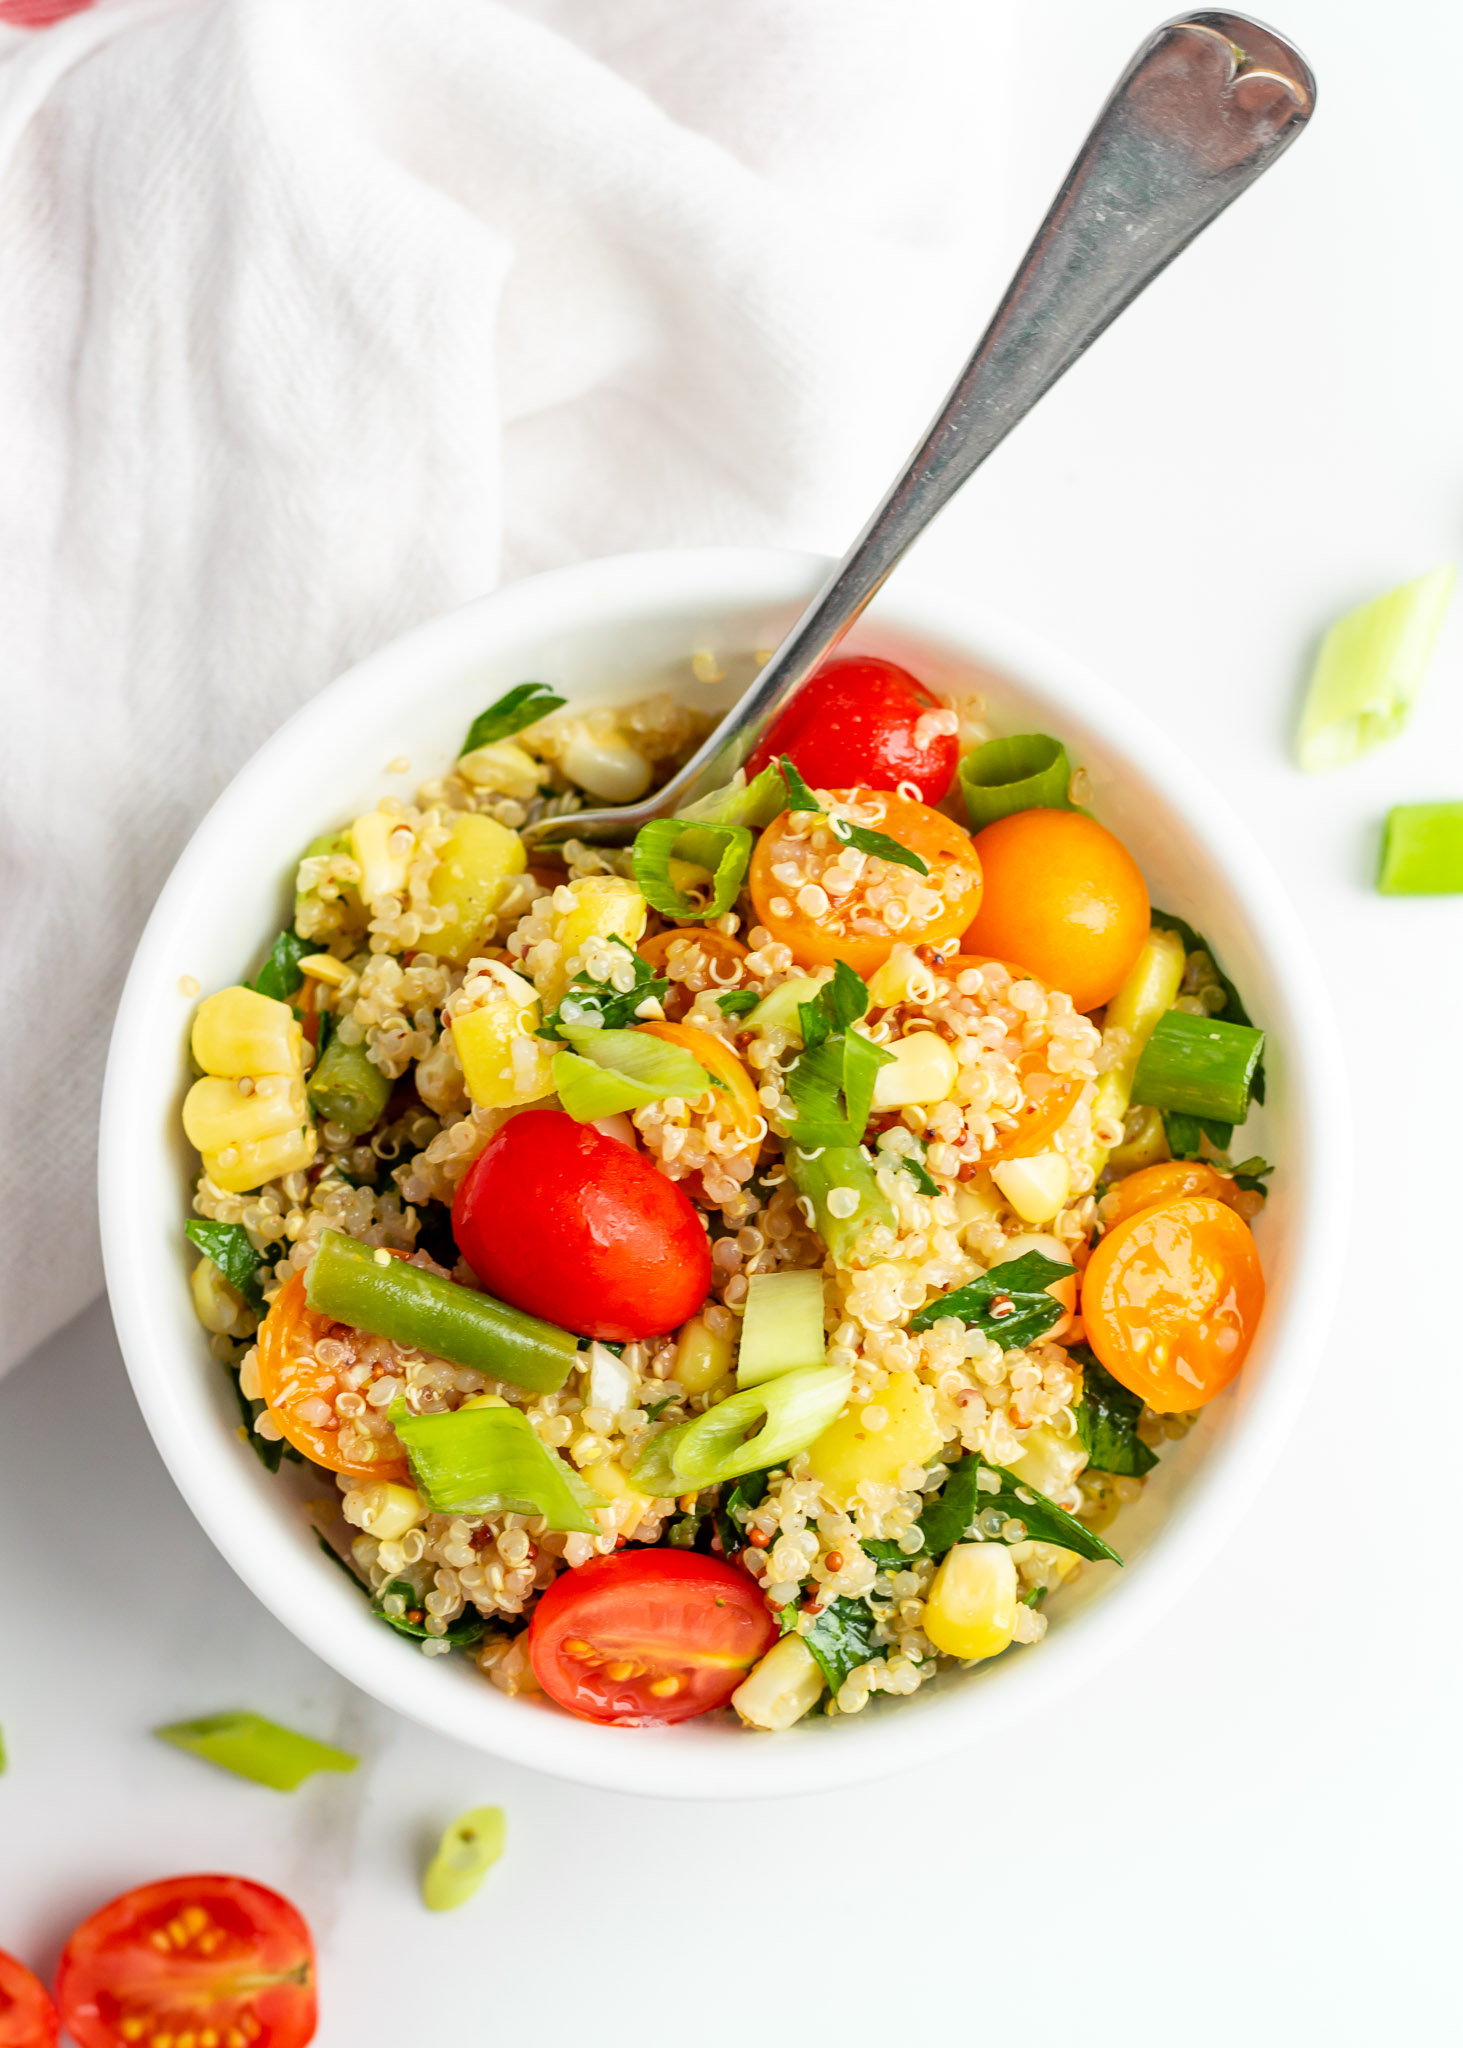 Summery Vegan Quinoa Salad Always Nourished All Veggie Vegetarian A Recipe Perfect For Lunch Every Day Of The Week This